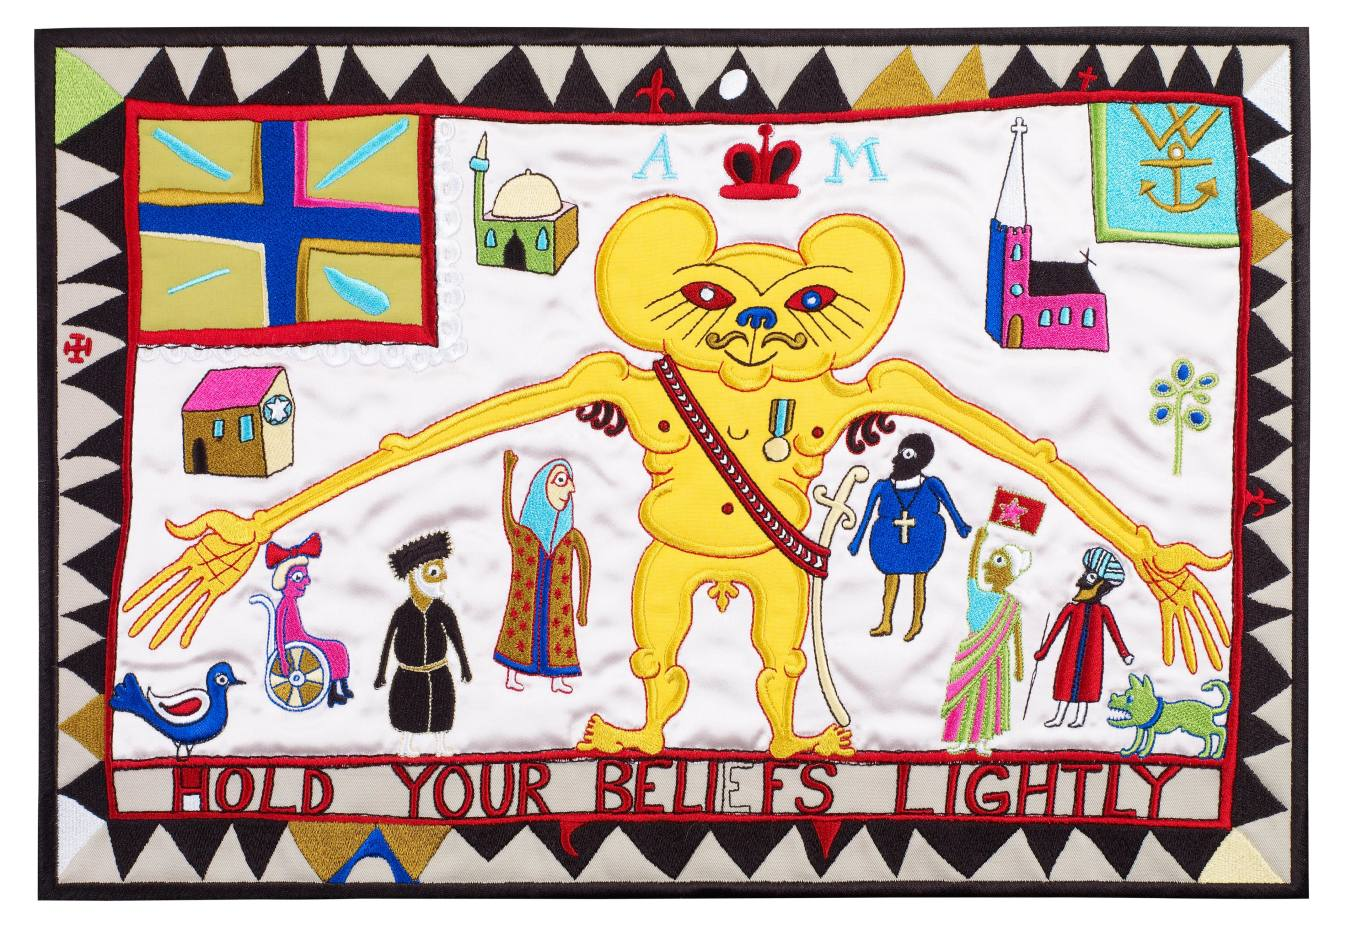 Hold Your Beliefs Lightly (2011) by Grayson Perry